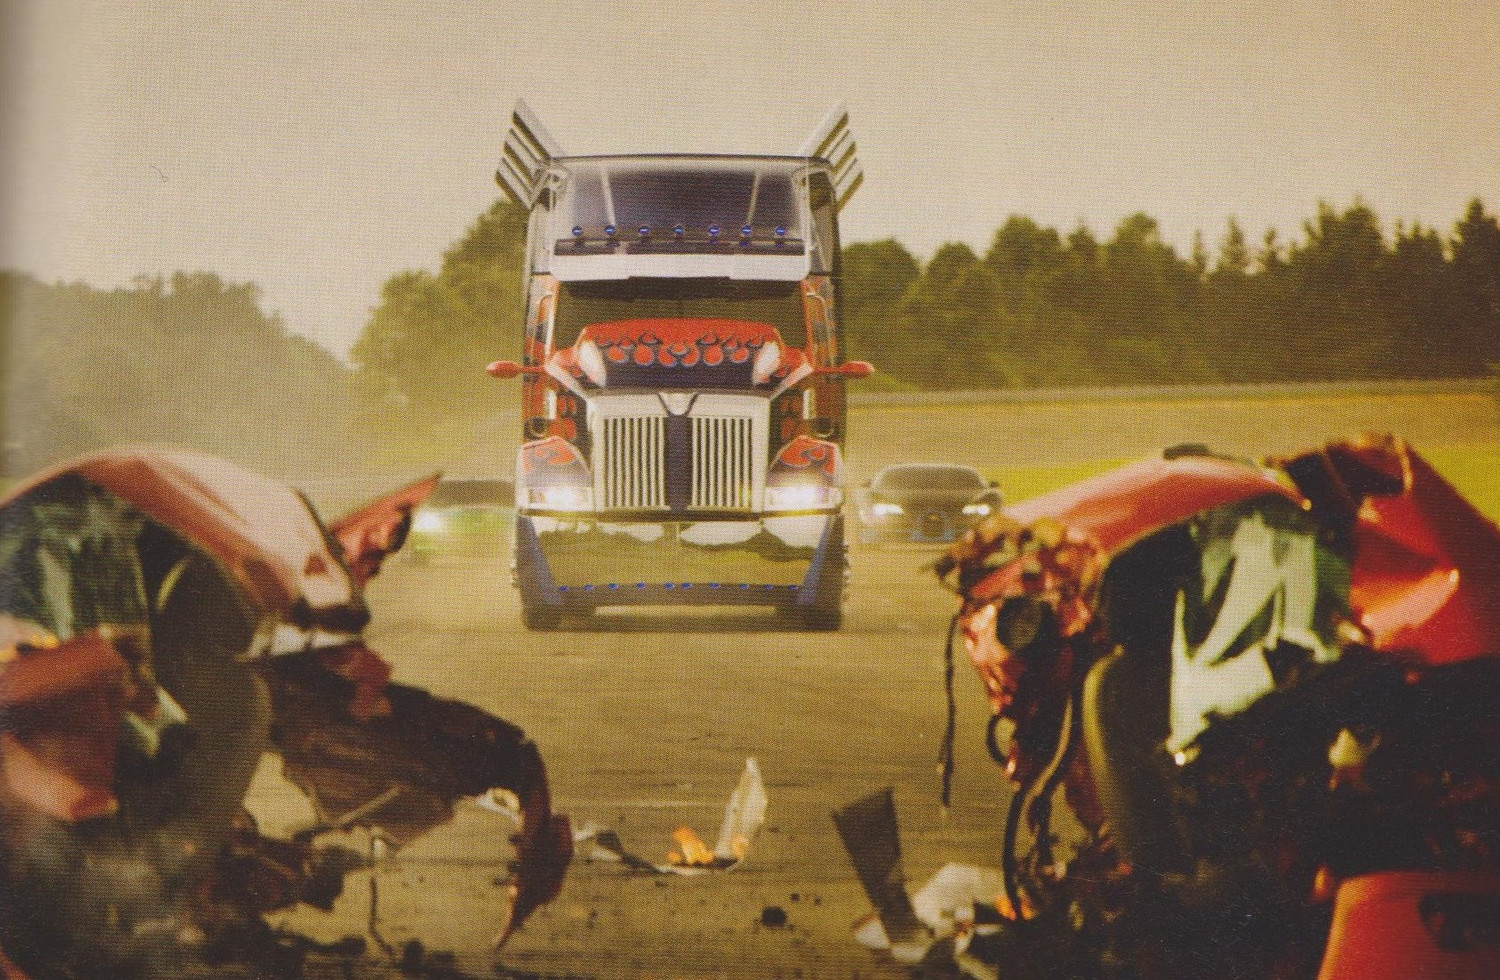 transformers 4 - new photos and story details — geektyrant